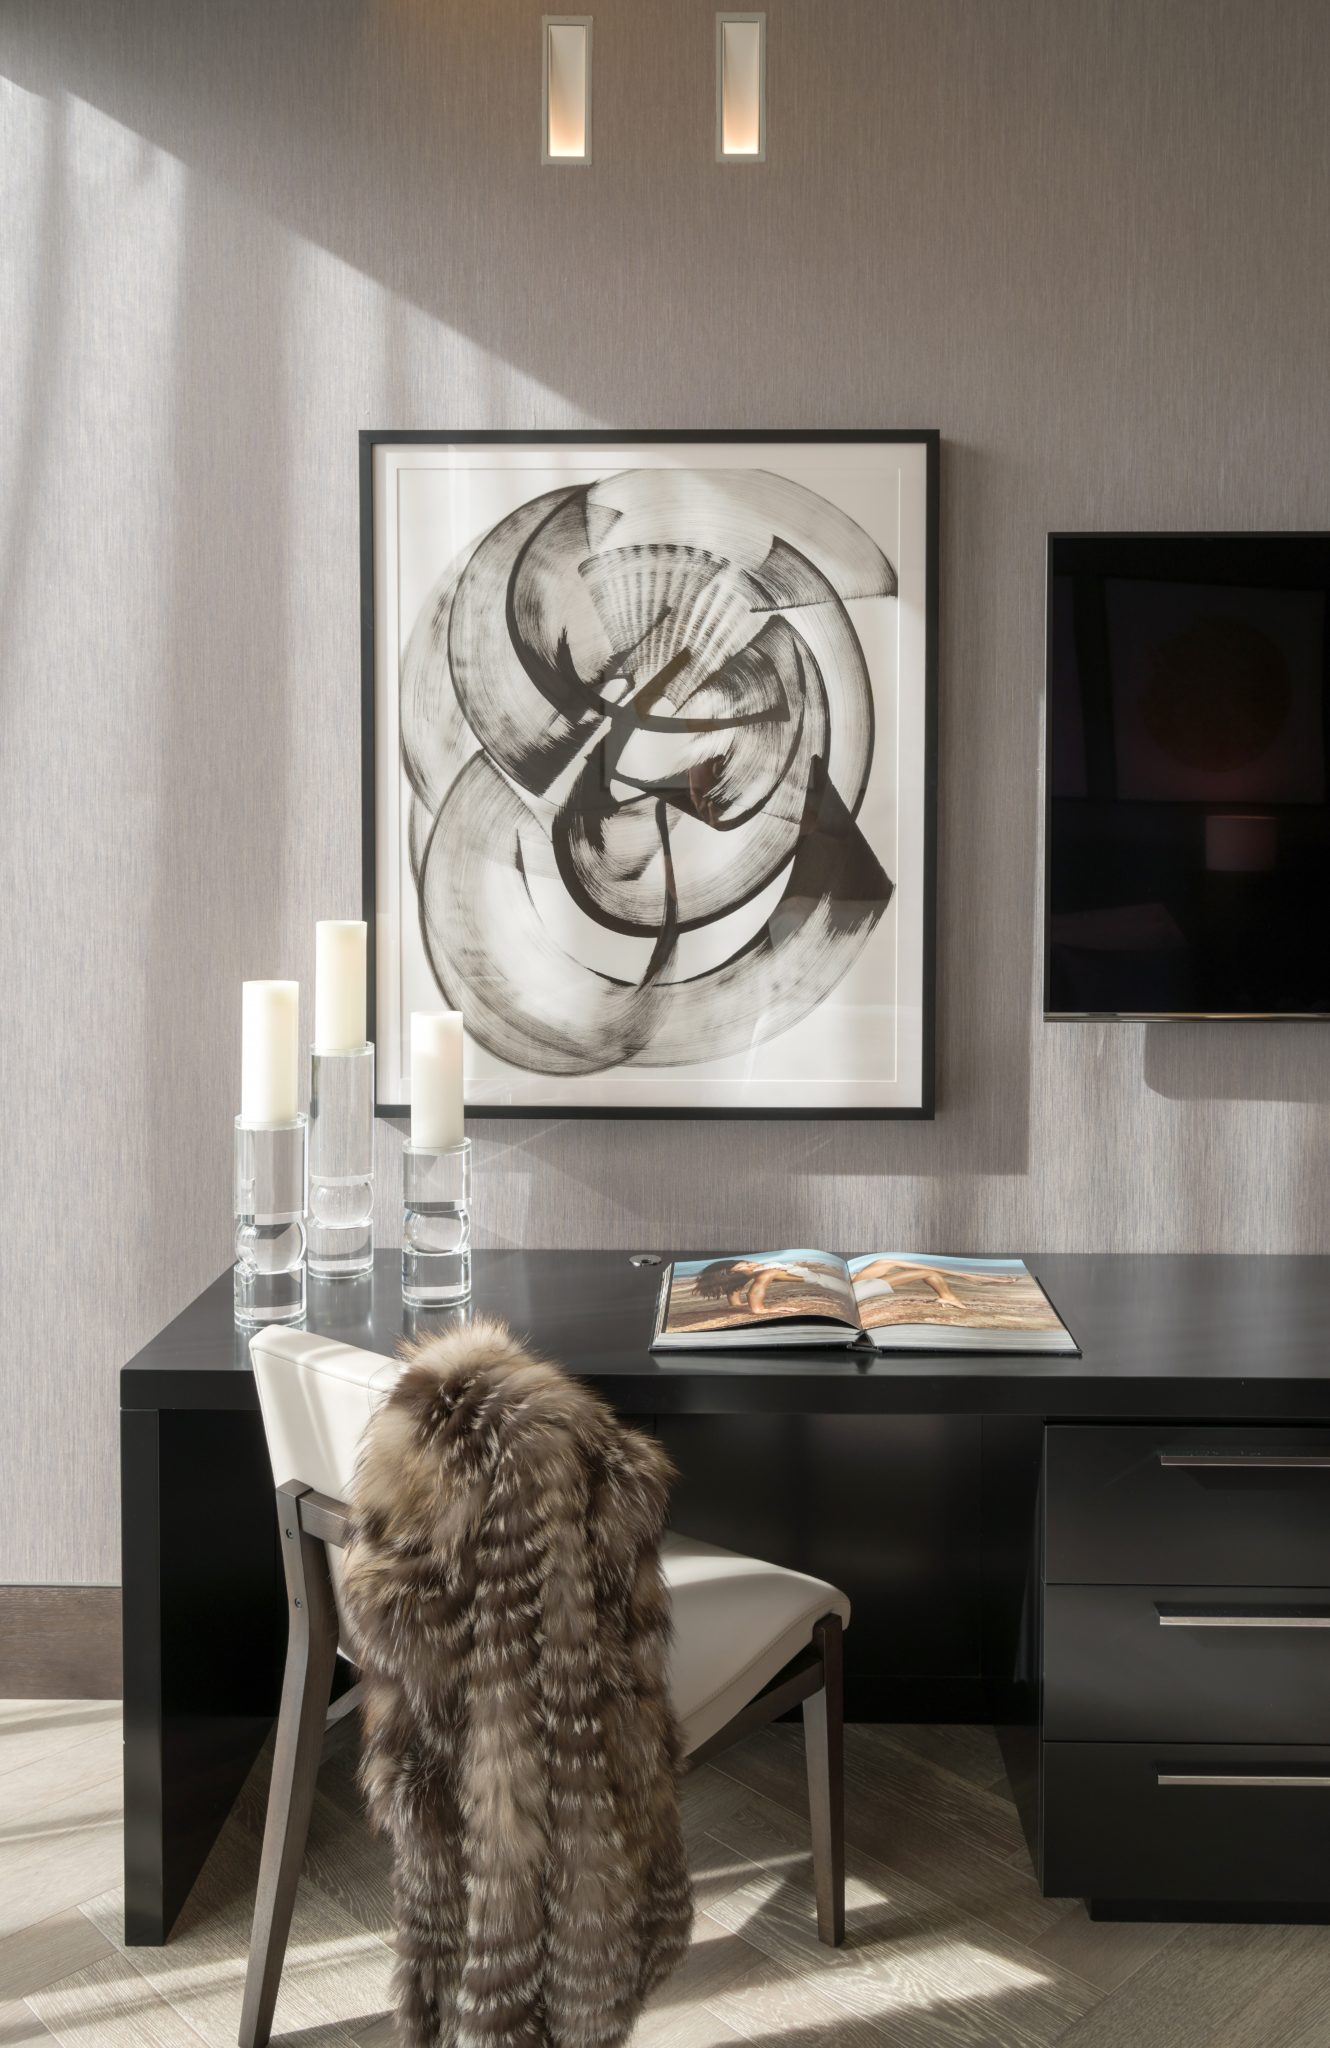 Intracoastal residence guest bedroom by B+G Design